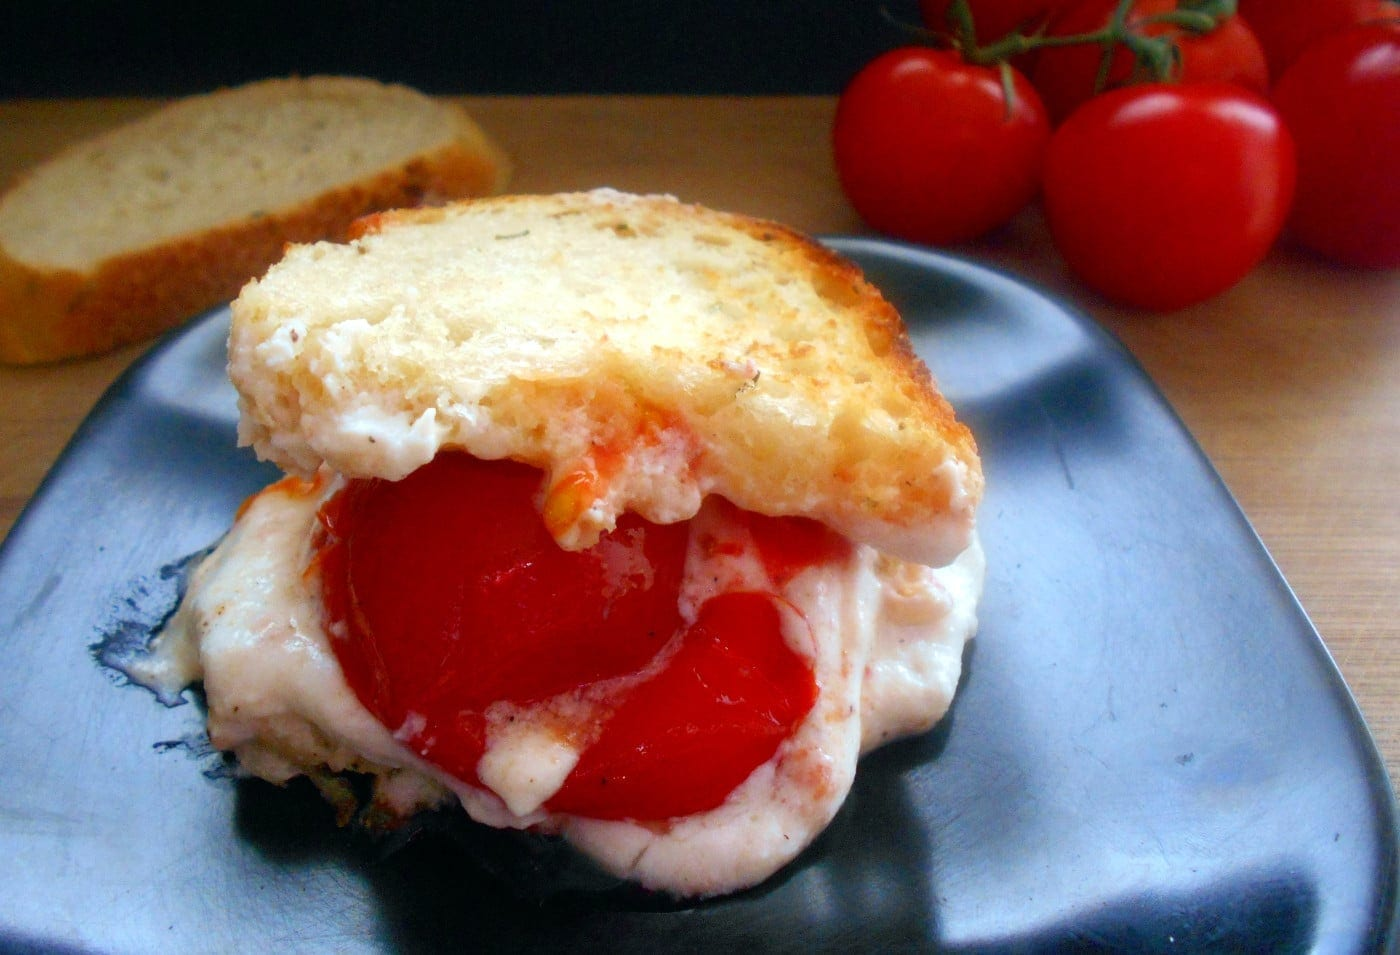 Grilled Cheese Sandwich with ricotta cheese and campari tomatoes. Perfect for lunch or a quick snack